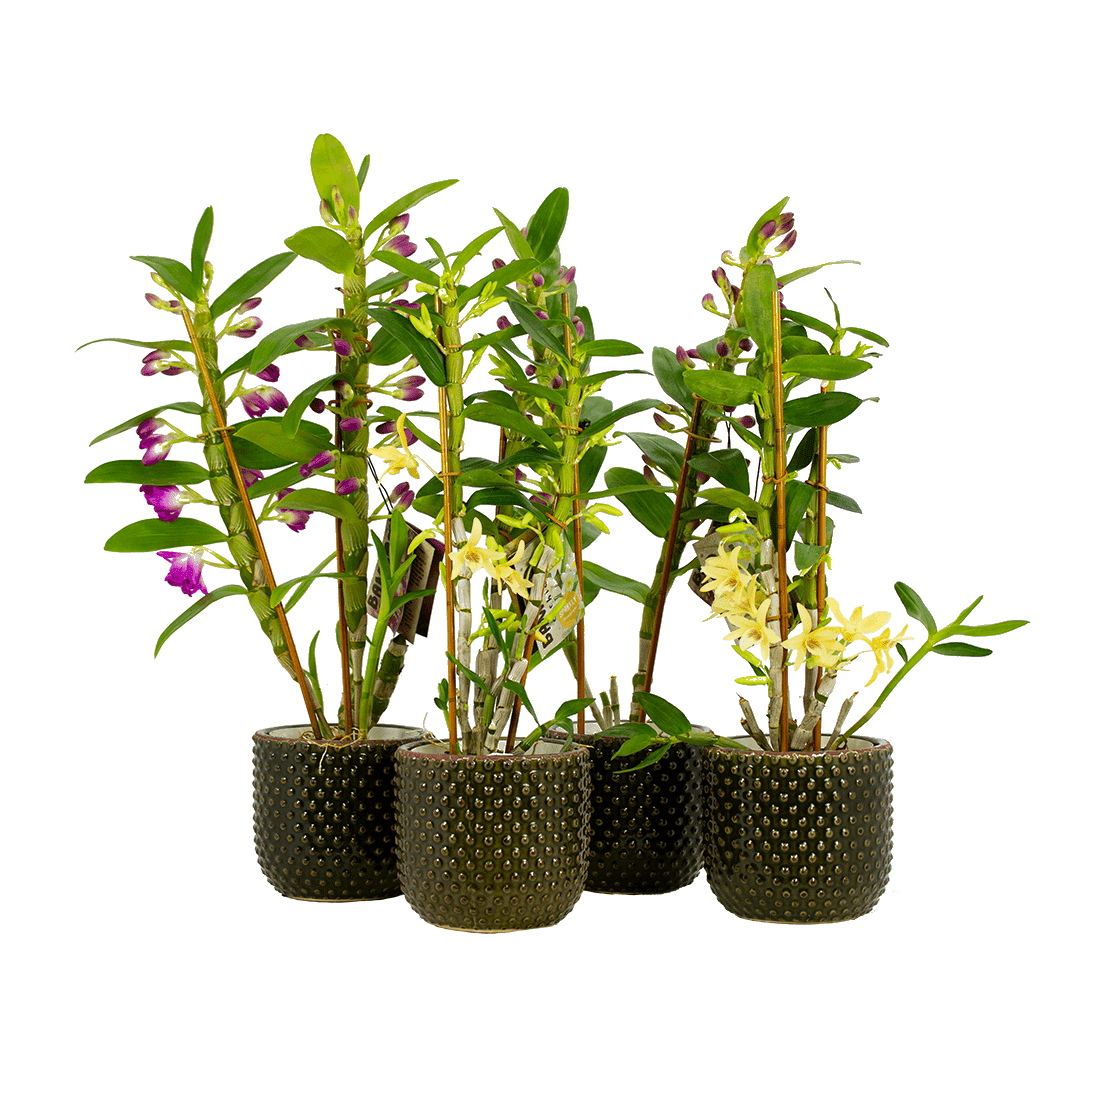 Orchidea – 4 × Bambù orchidea in vaso di ceramica verde scuro come set – Altezza: 50 cm, 3 germogli